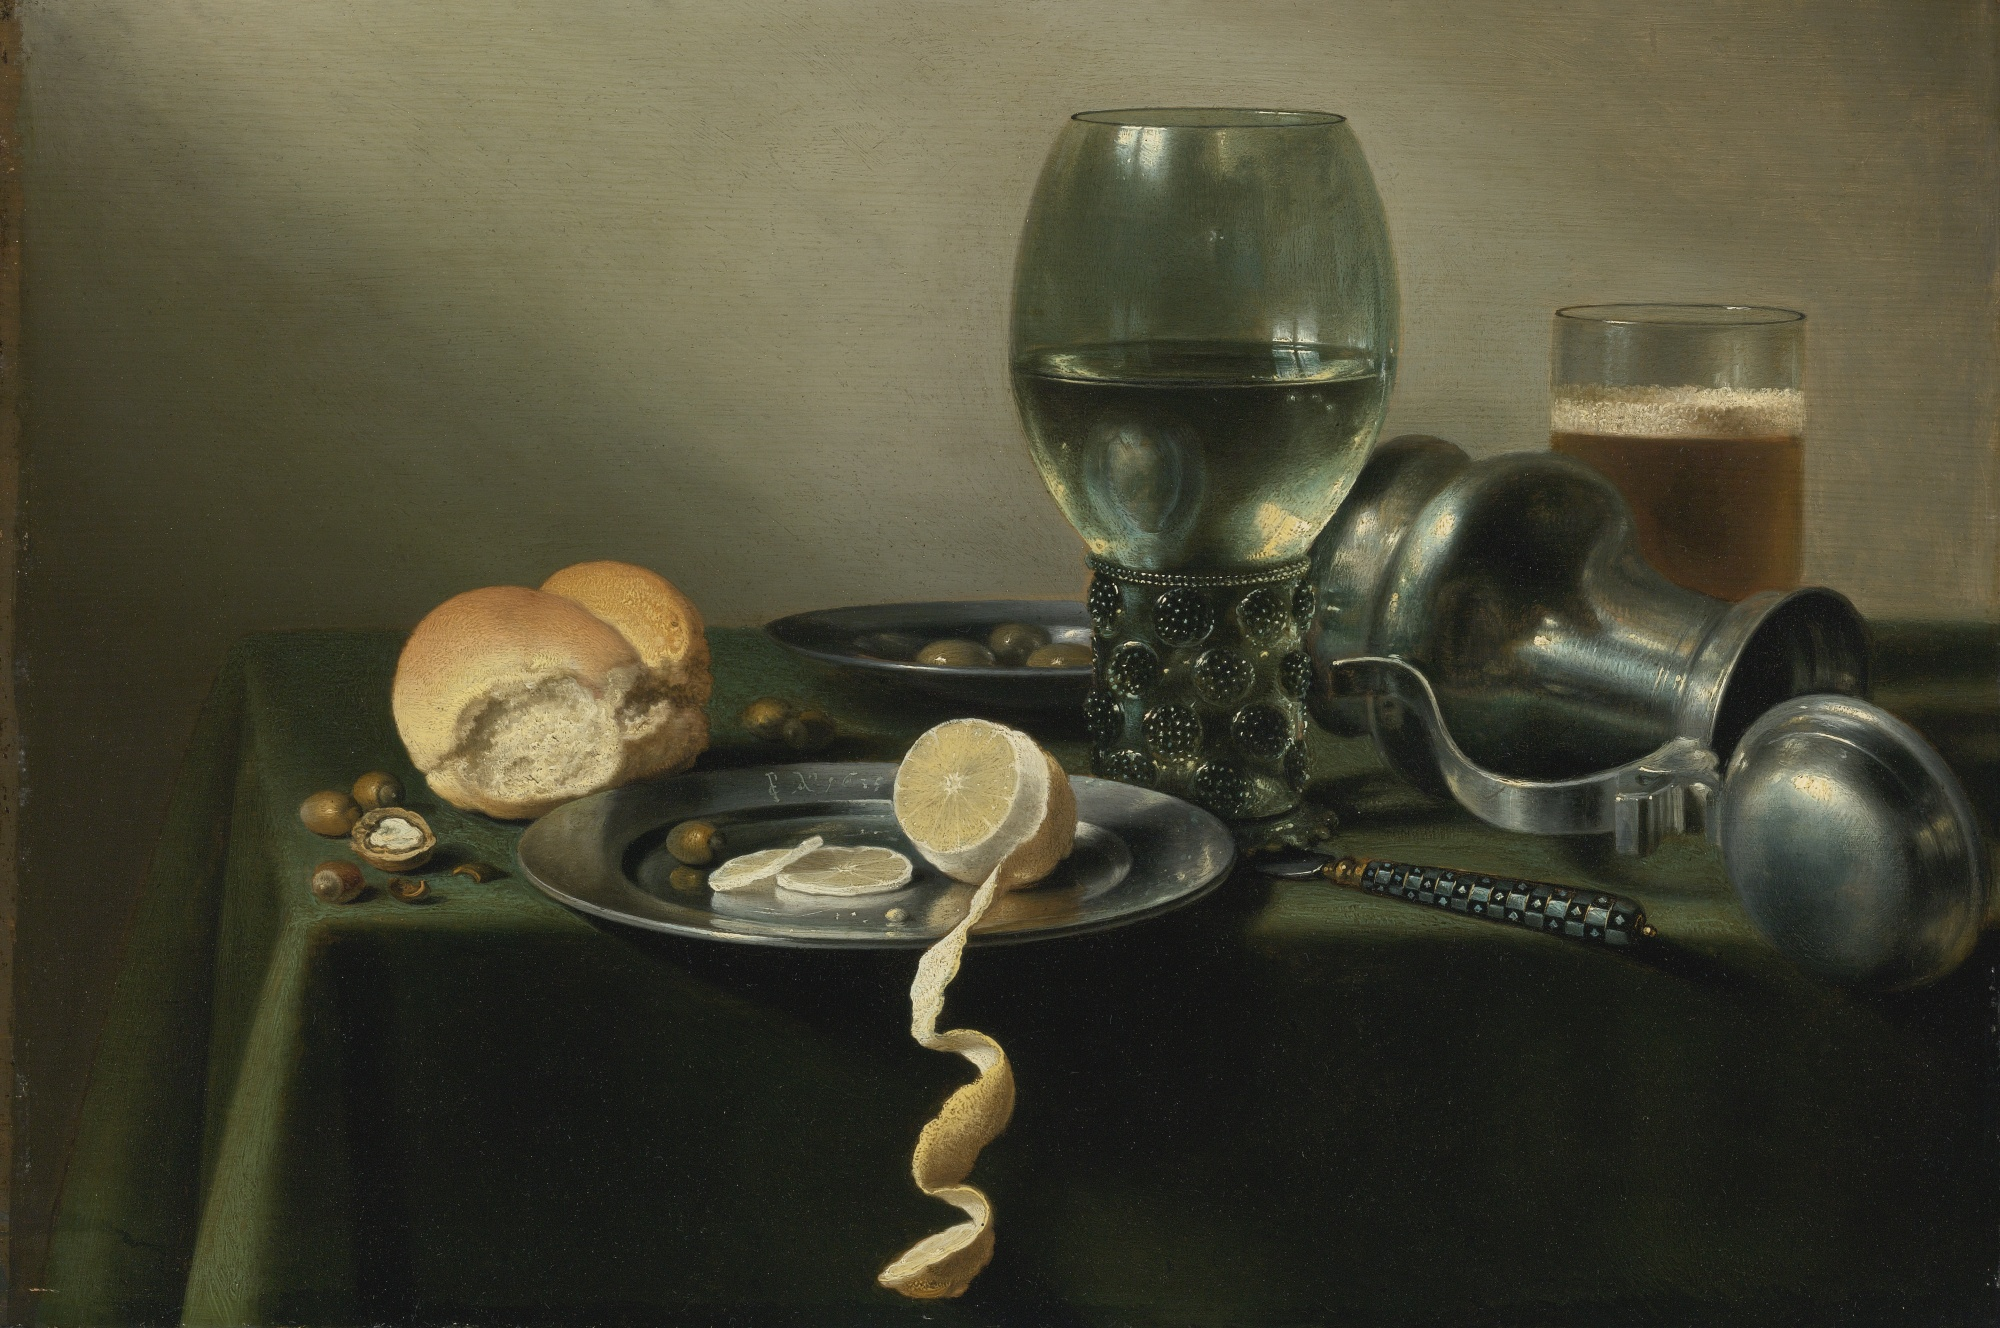 A Roemer Glass, Overturned Pewter Jug, Olives, and a Half-Peeled Lemon on Pewter Plates, by Pieter Claesz, 1635